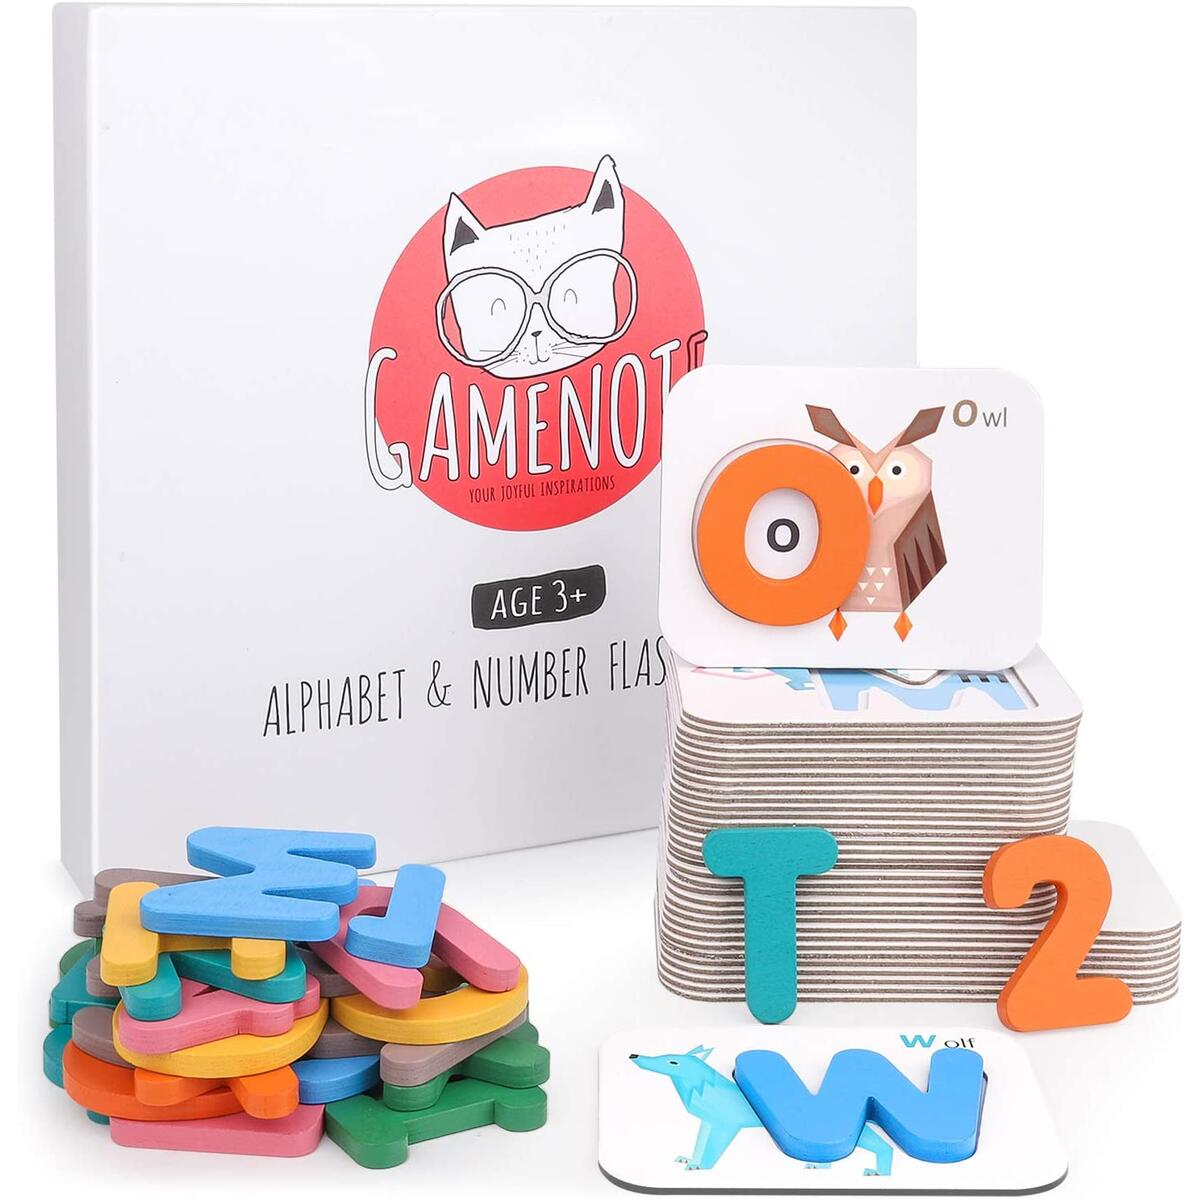 Gamenote Alphabet and Numbers Flash Cards - Wooden ABC Letters Matching Puzzle Game Montessori Toys for Toddlers Educational Activities Preschool Learning